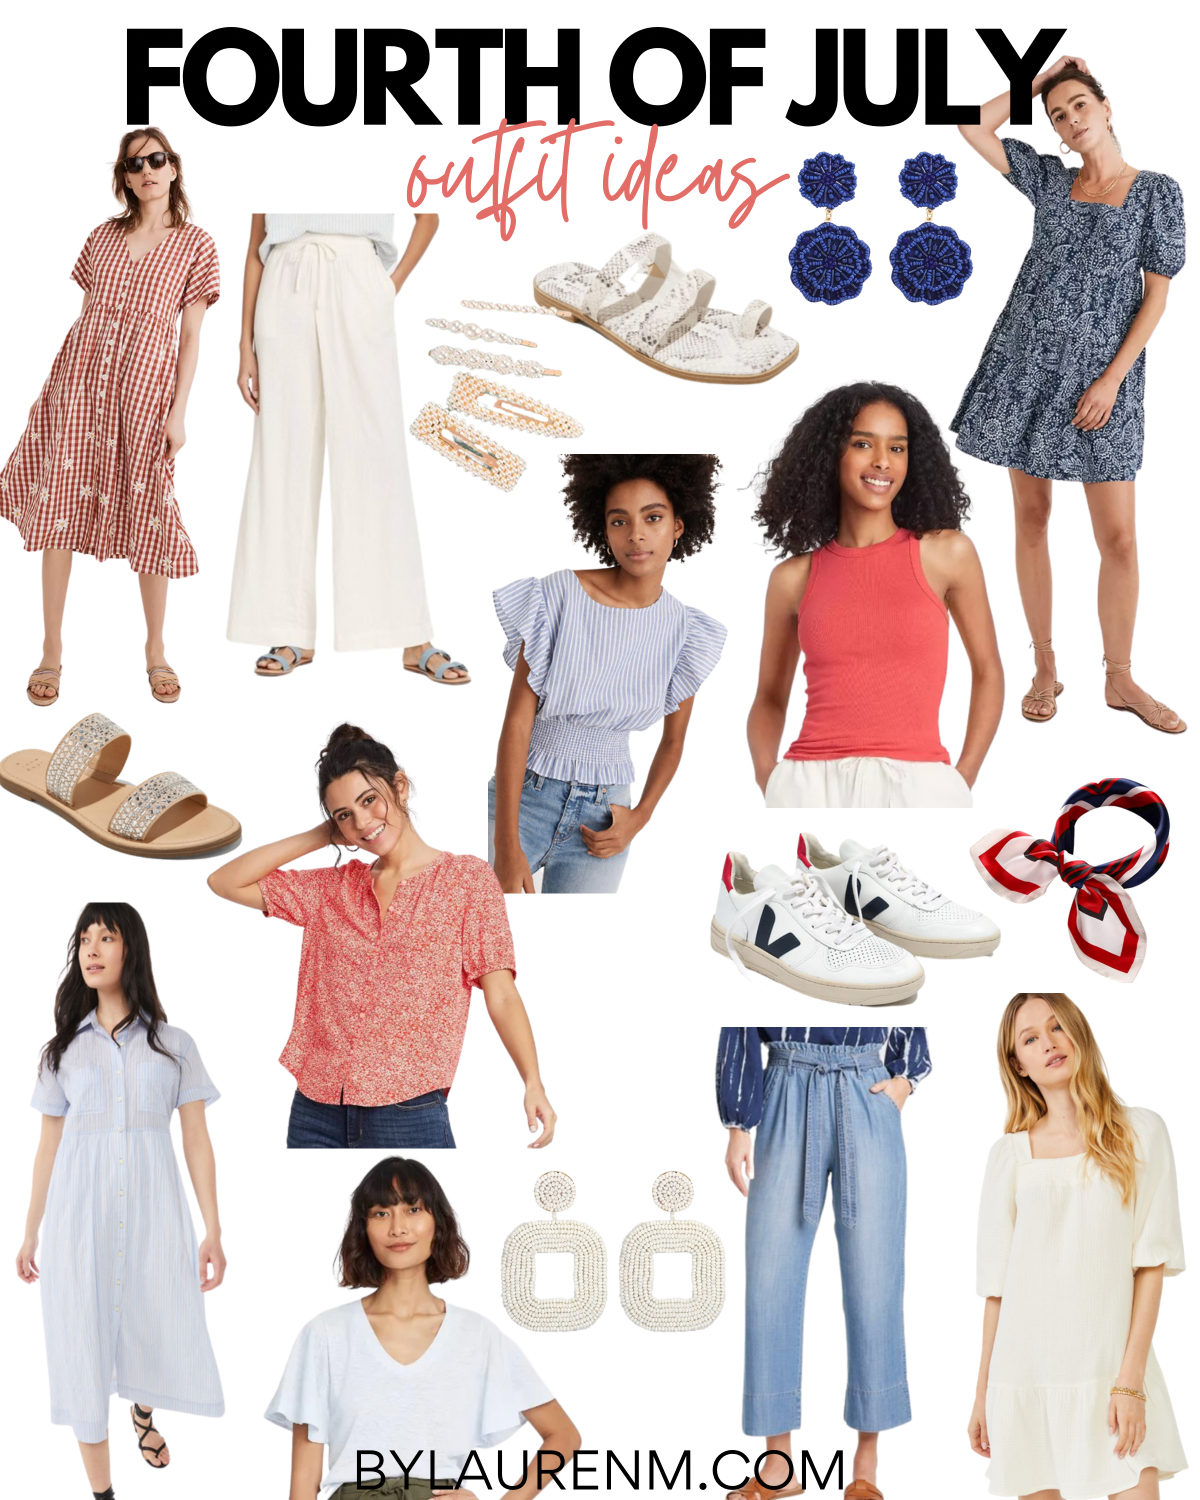 Virginia blogger, Lauren Dix, shares Fourth of July outfits. 4th of July outfit inspiration!